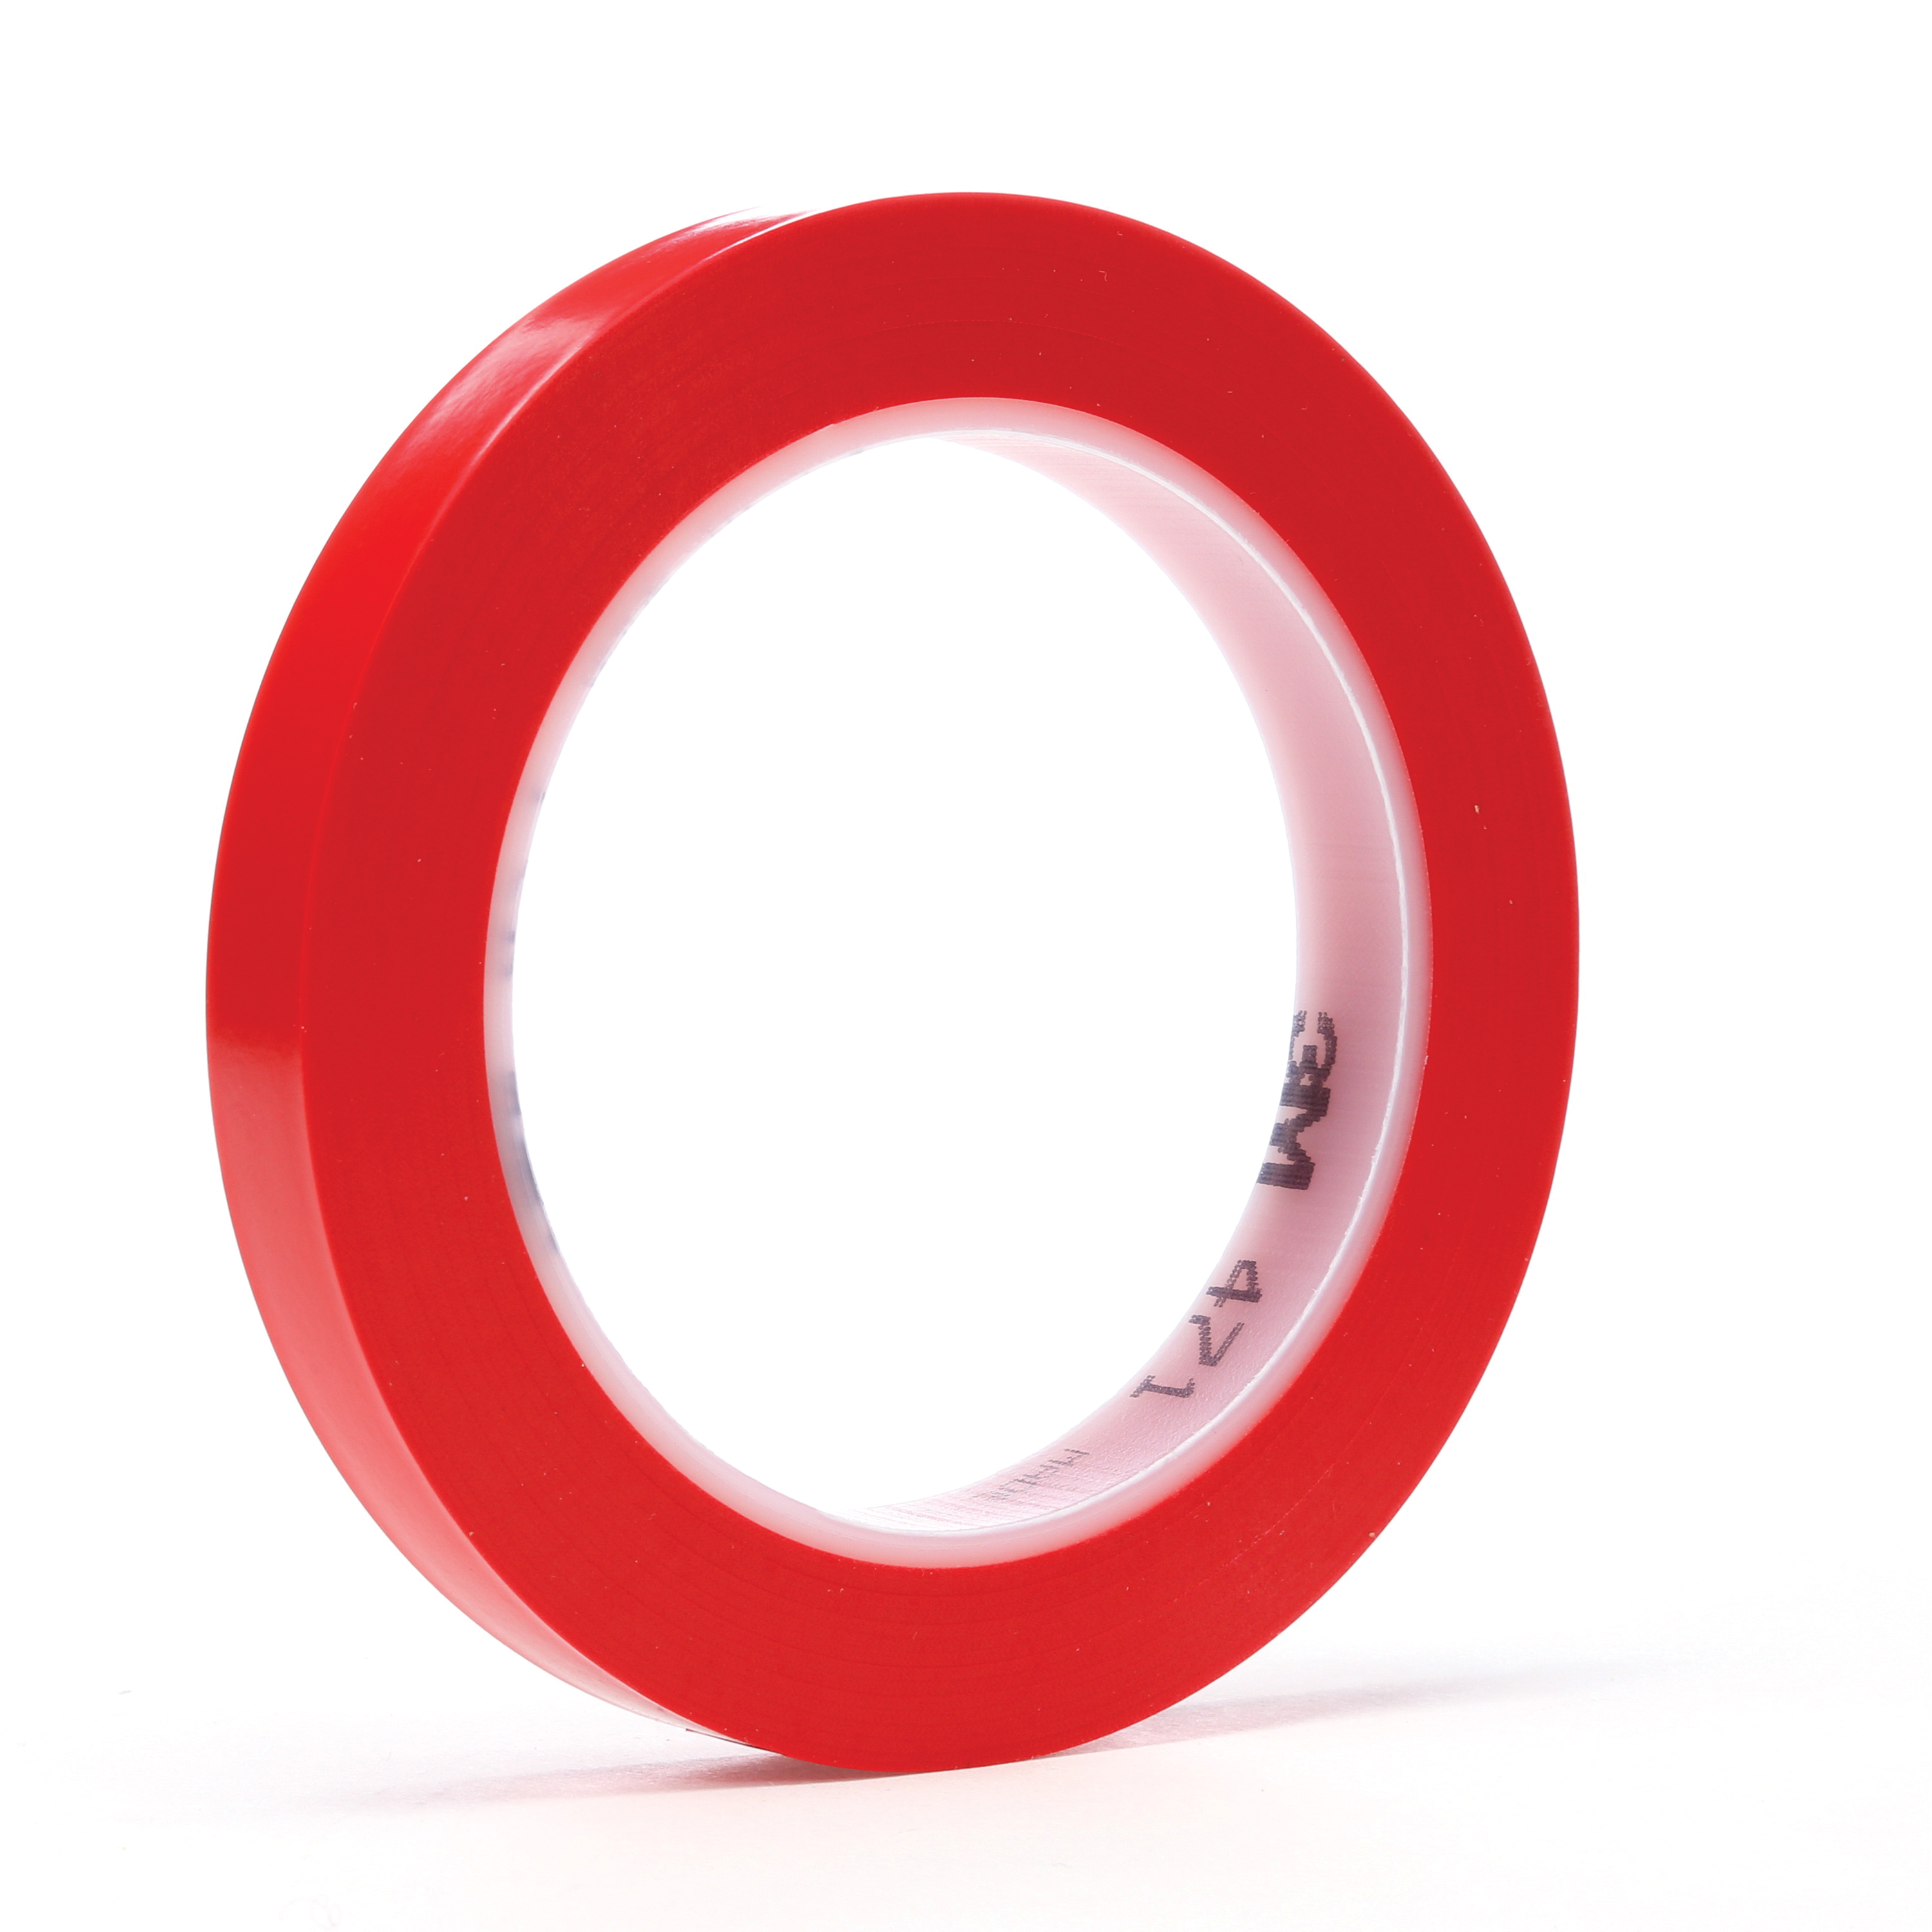 3M™ 021200-03106 High Performance Vinyl Tape, 36 yd L x 3/4 in W, 5.2 mil THK, Rubber Adhesive, Vinyl Backing, Red